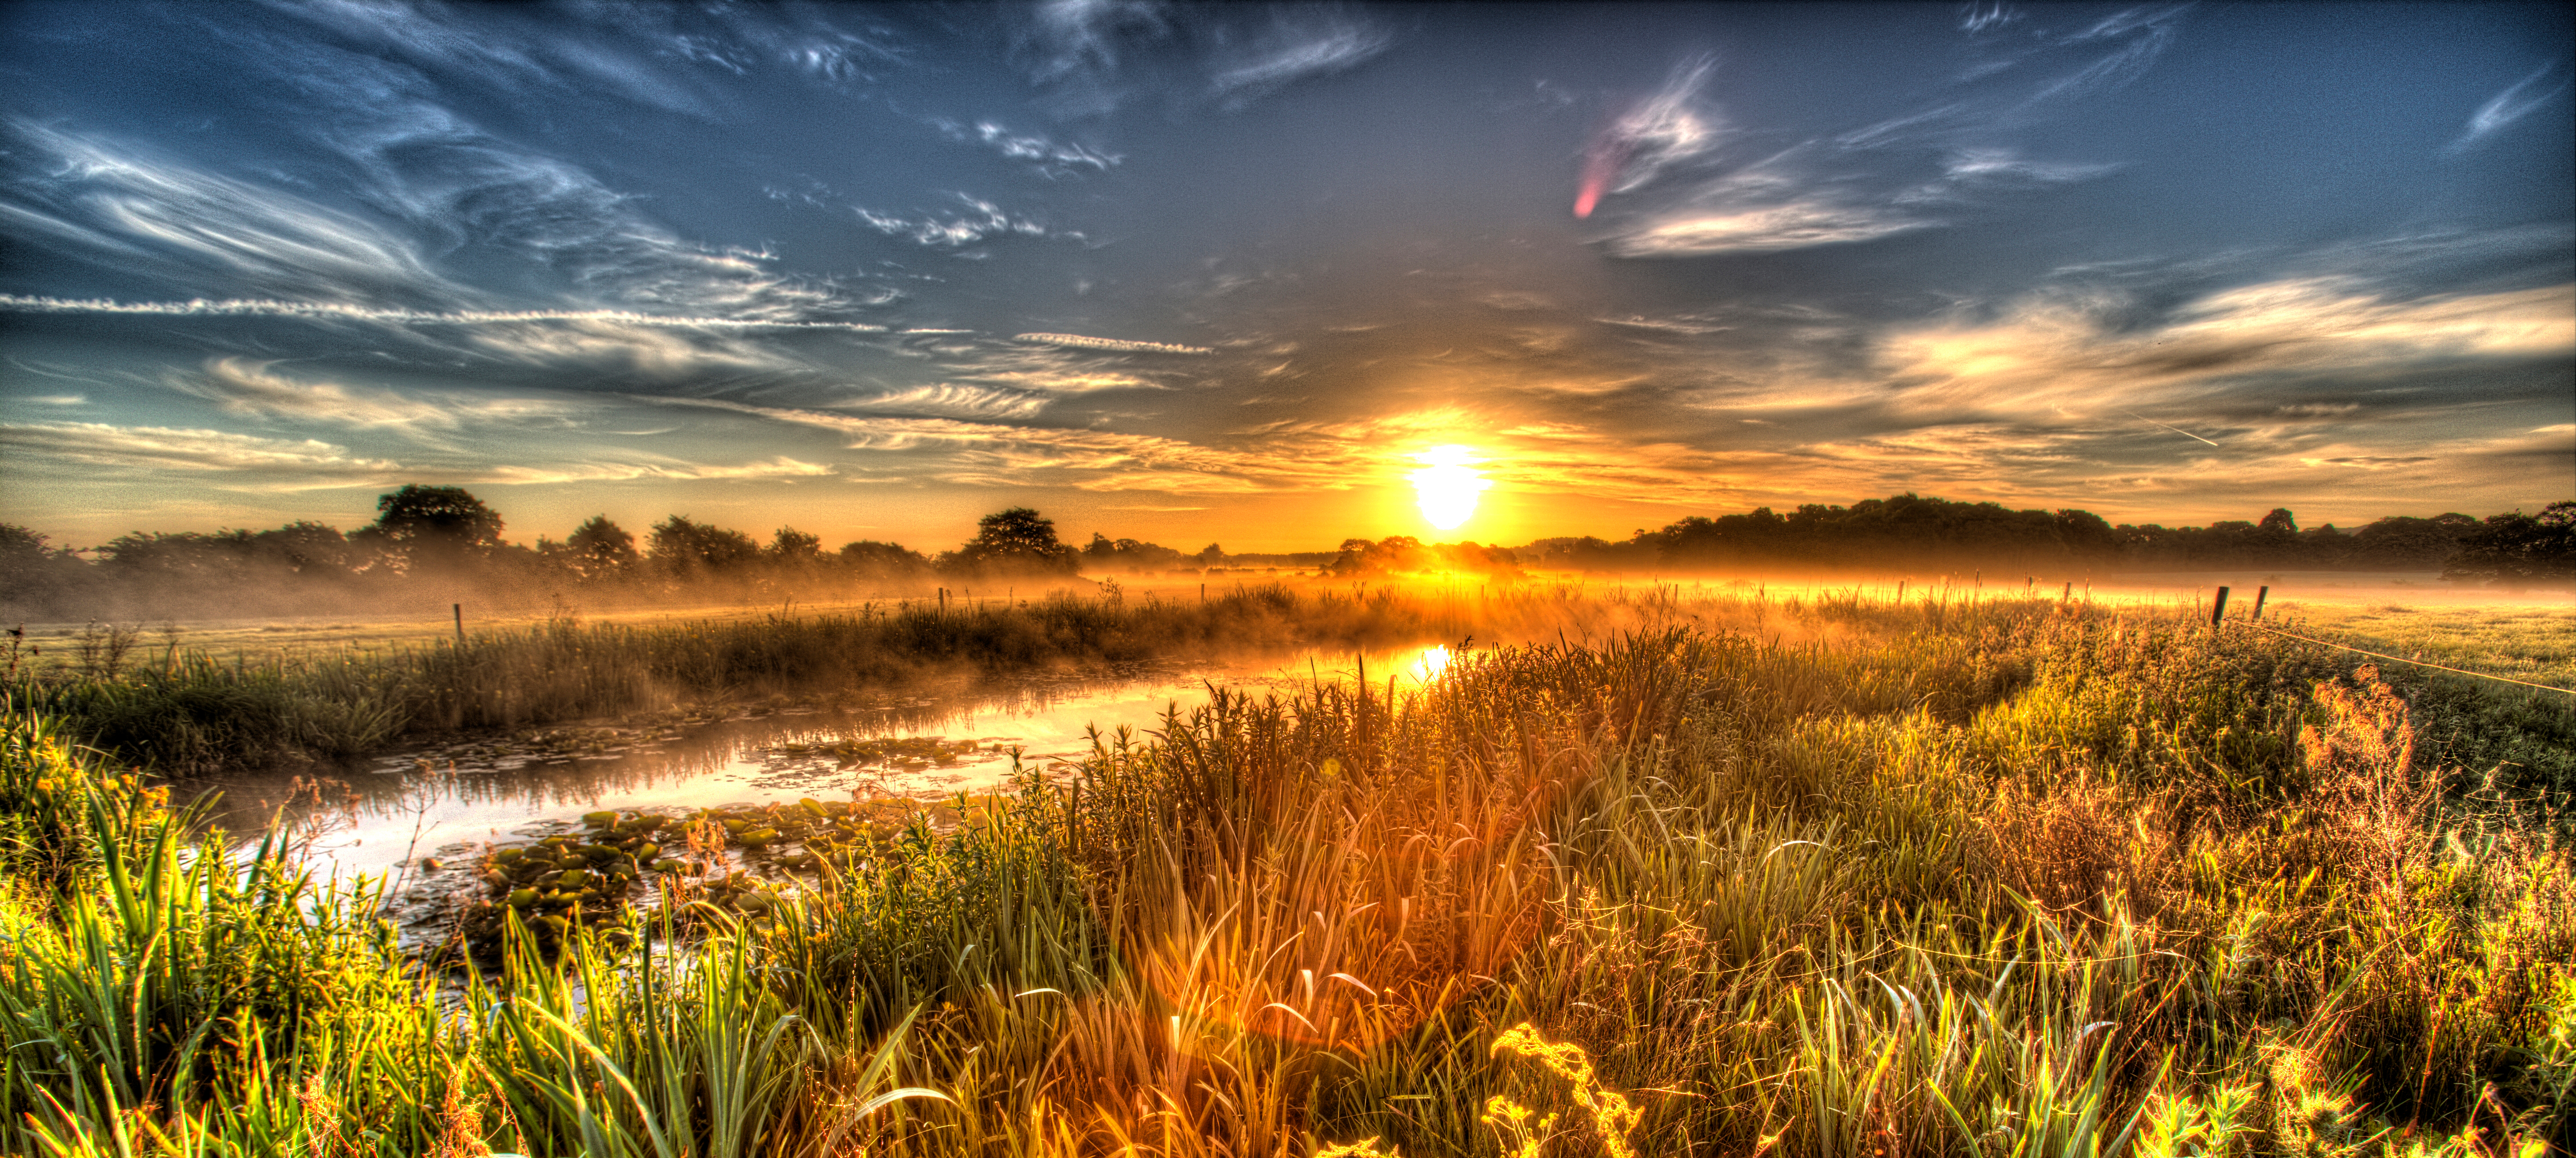 Artistic sunrise view of a freshwater pond in a Cheshire farming field.